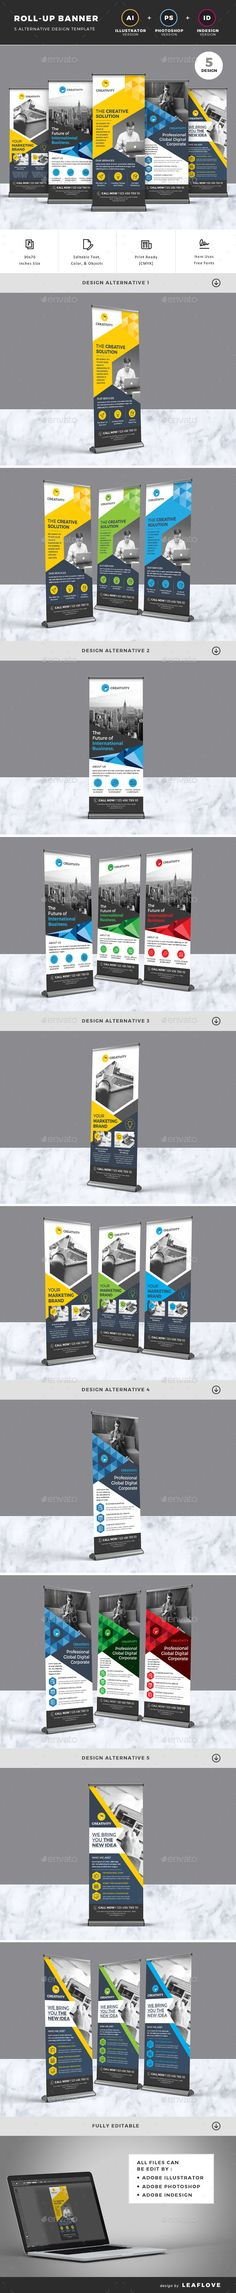 Roll-up Banners Template PSD, Vector EPS, InDesign INDD, AI Illustrator